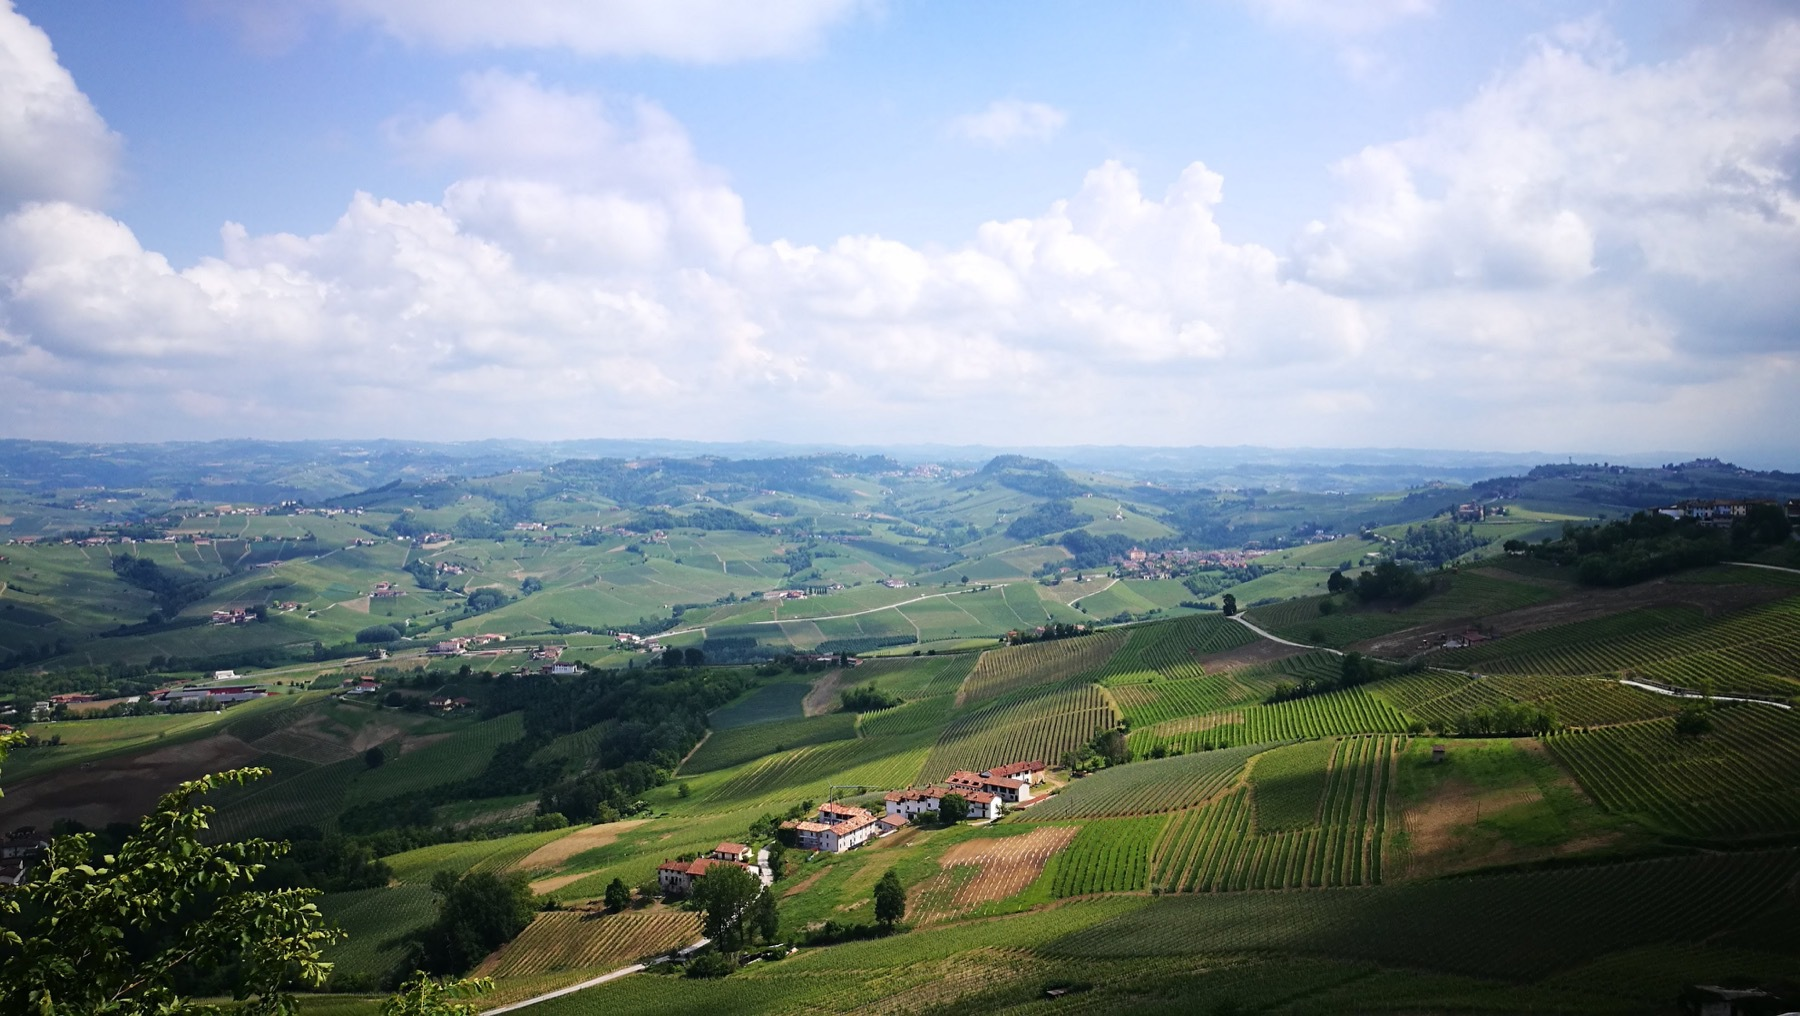 Vineyards in the Langhe